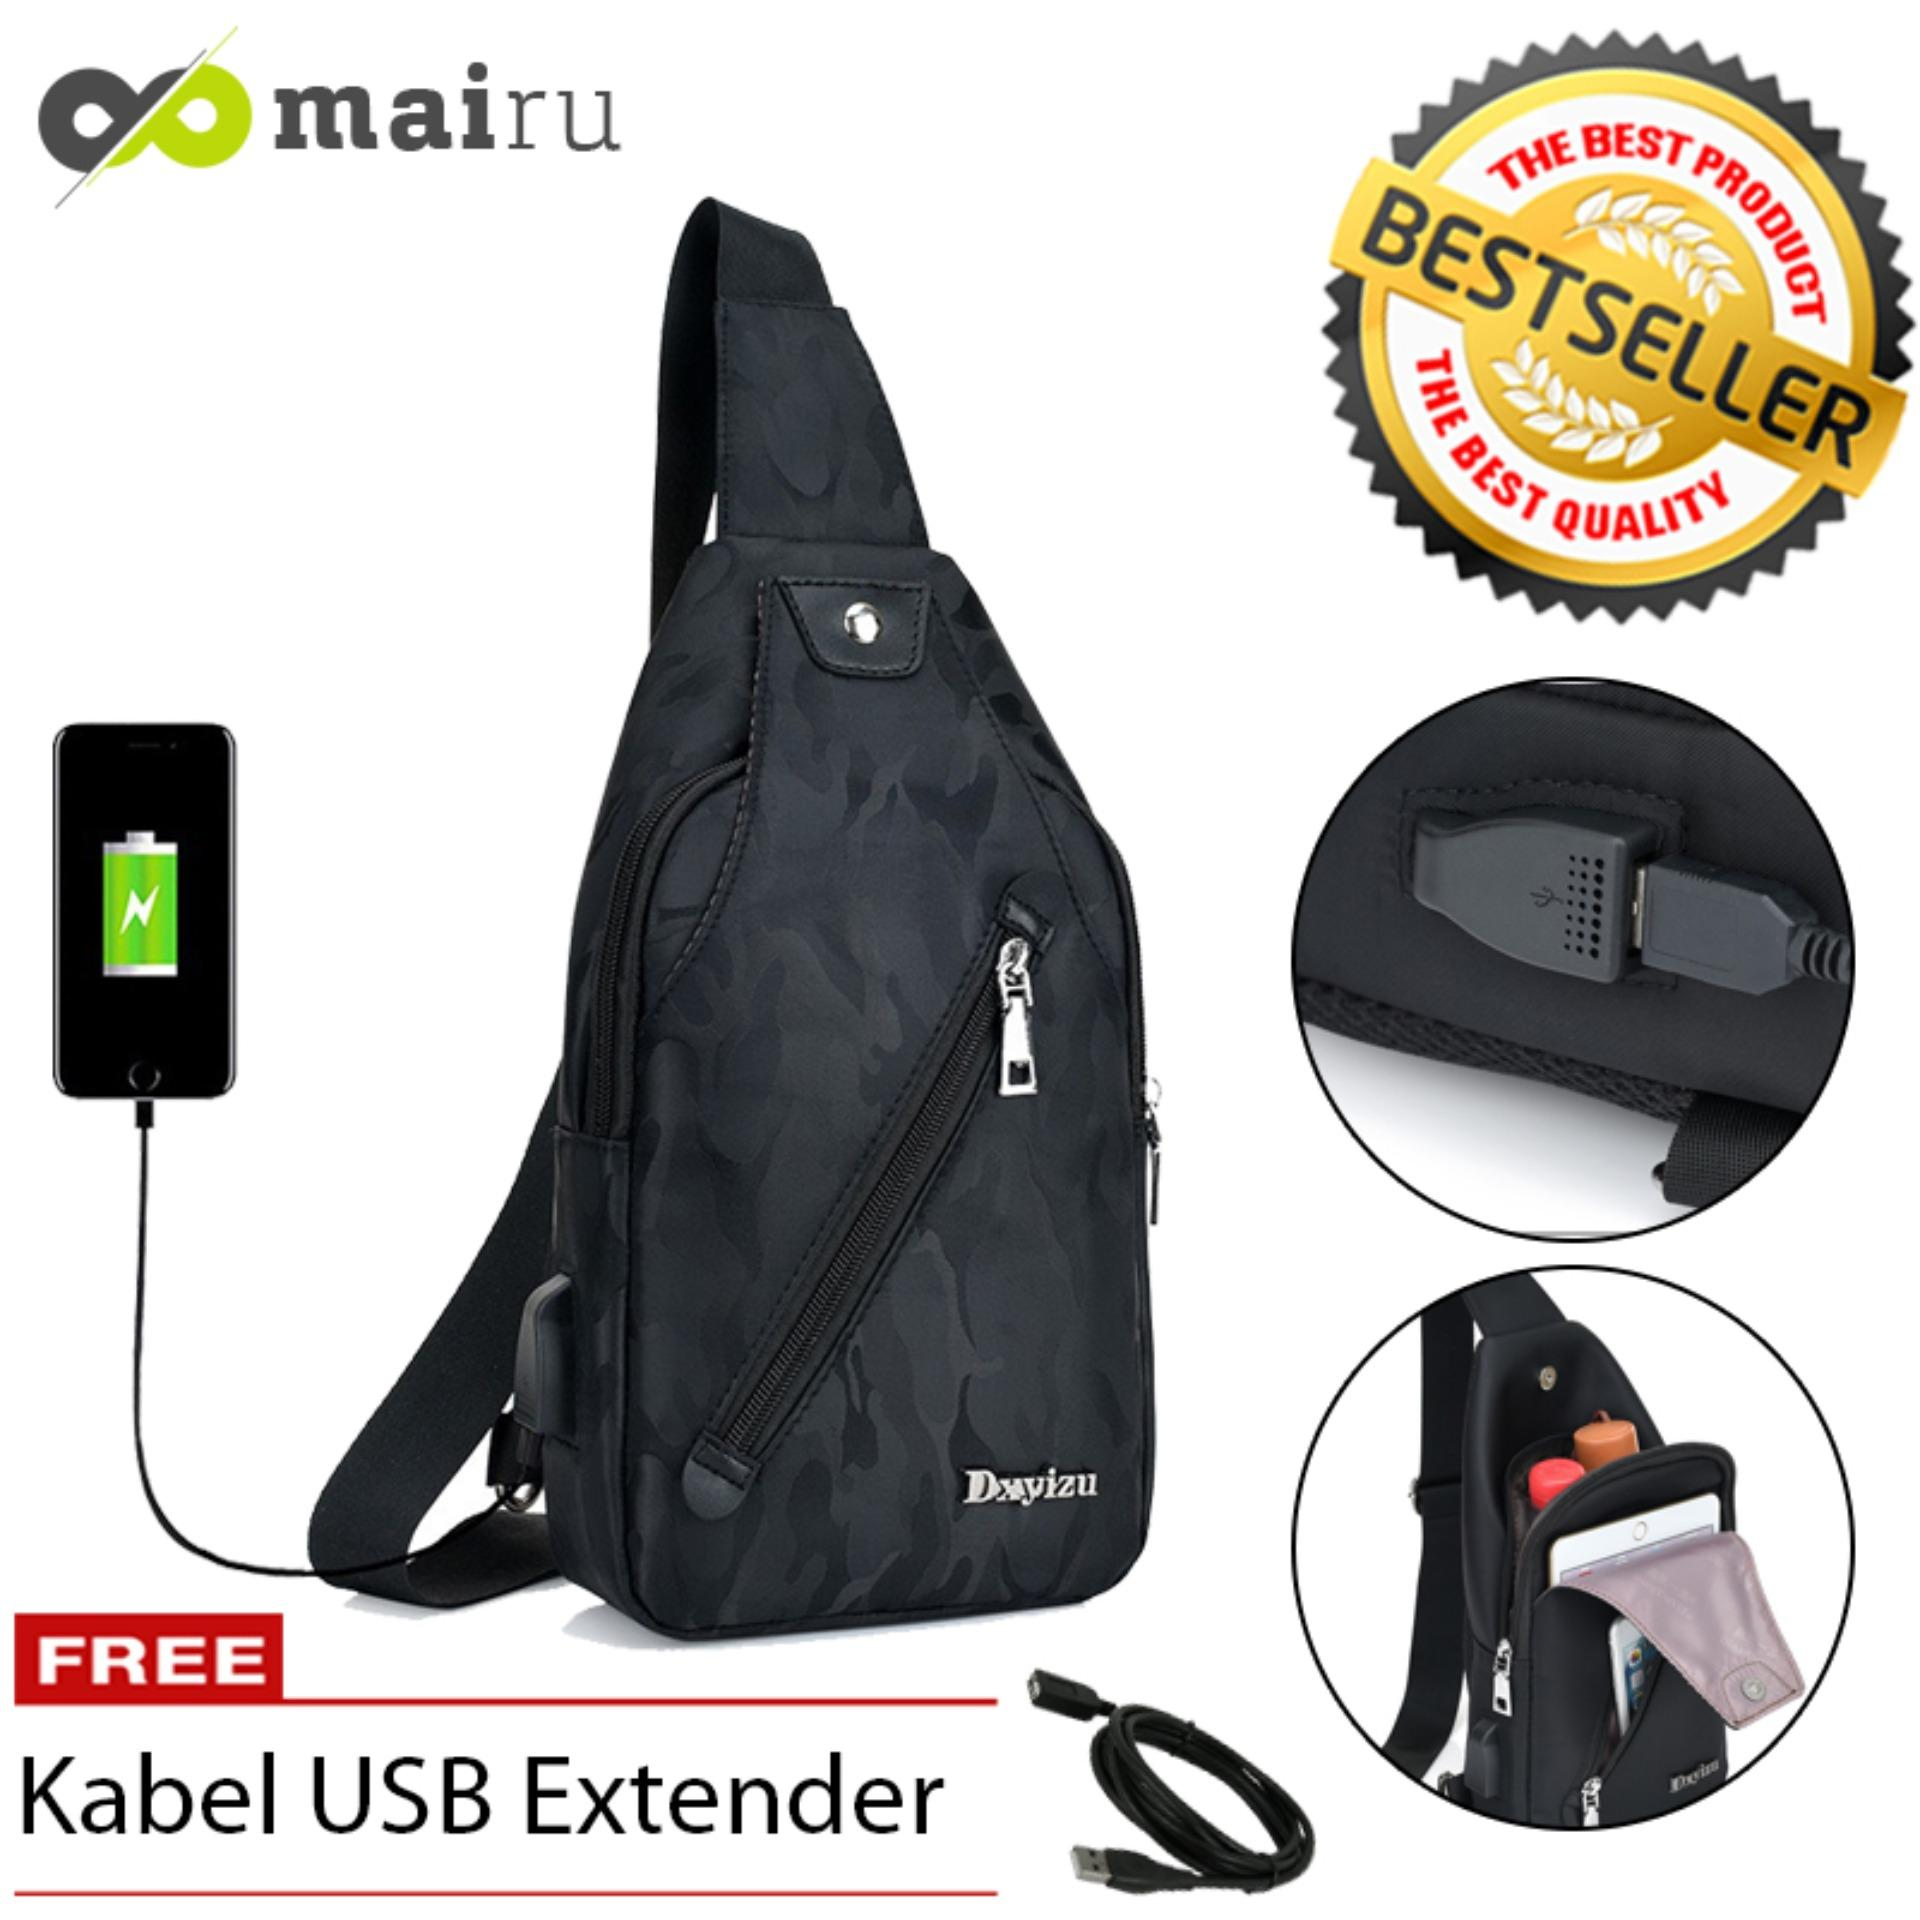 Beli Mairu Dxyizu 533 Tas Selempang Pria Sling Bag Cross Body With Usb Charger Support For Iphone Ipad Mini Xiaomi Samsung Tab Tablet 8 Anti Theft Lengkap